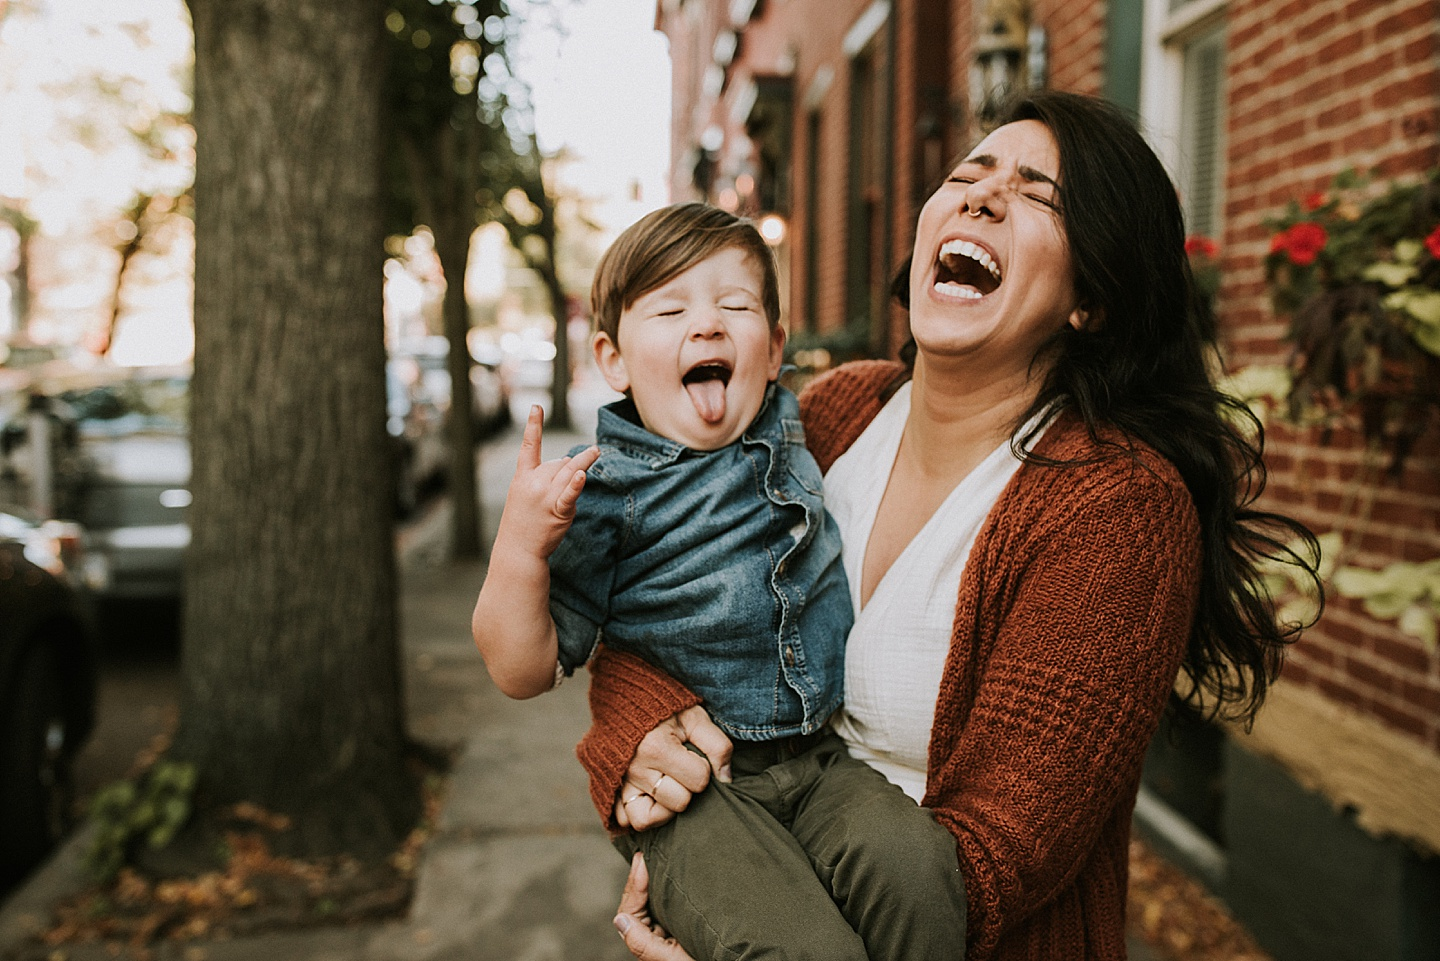 Mother laughing at toddler portrait